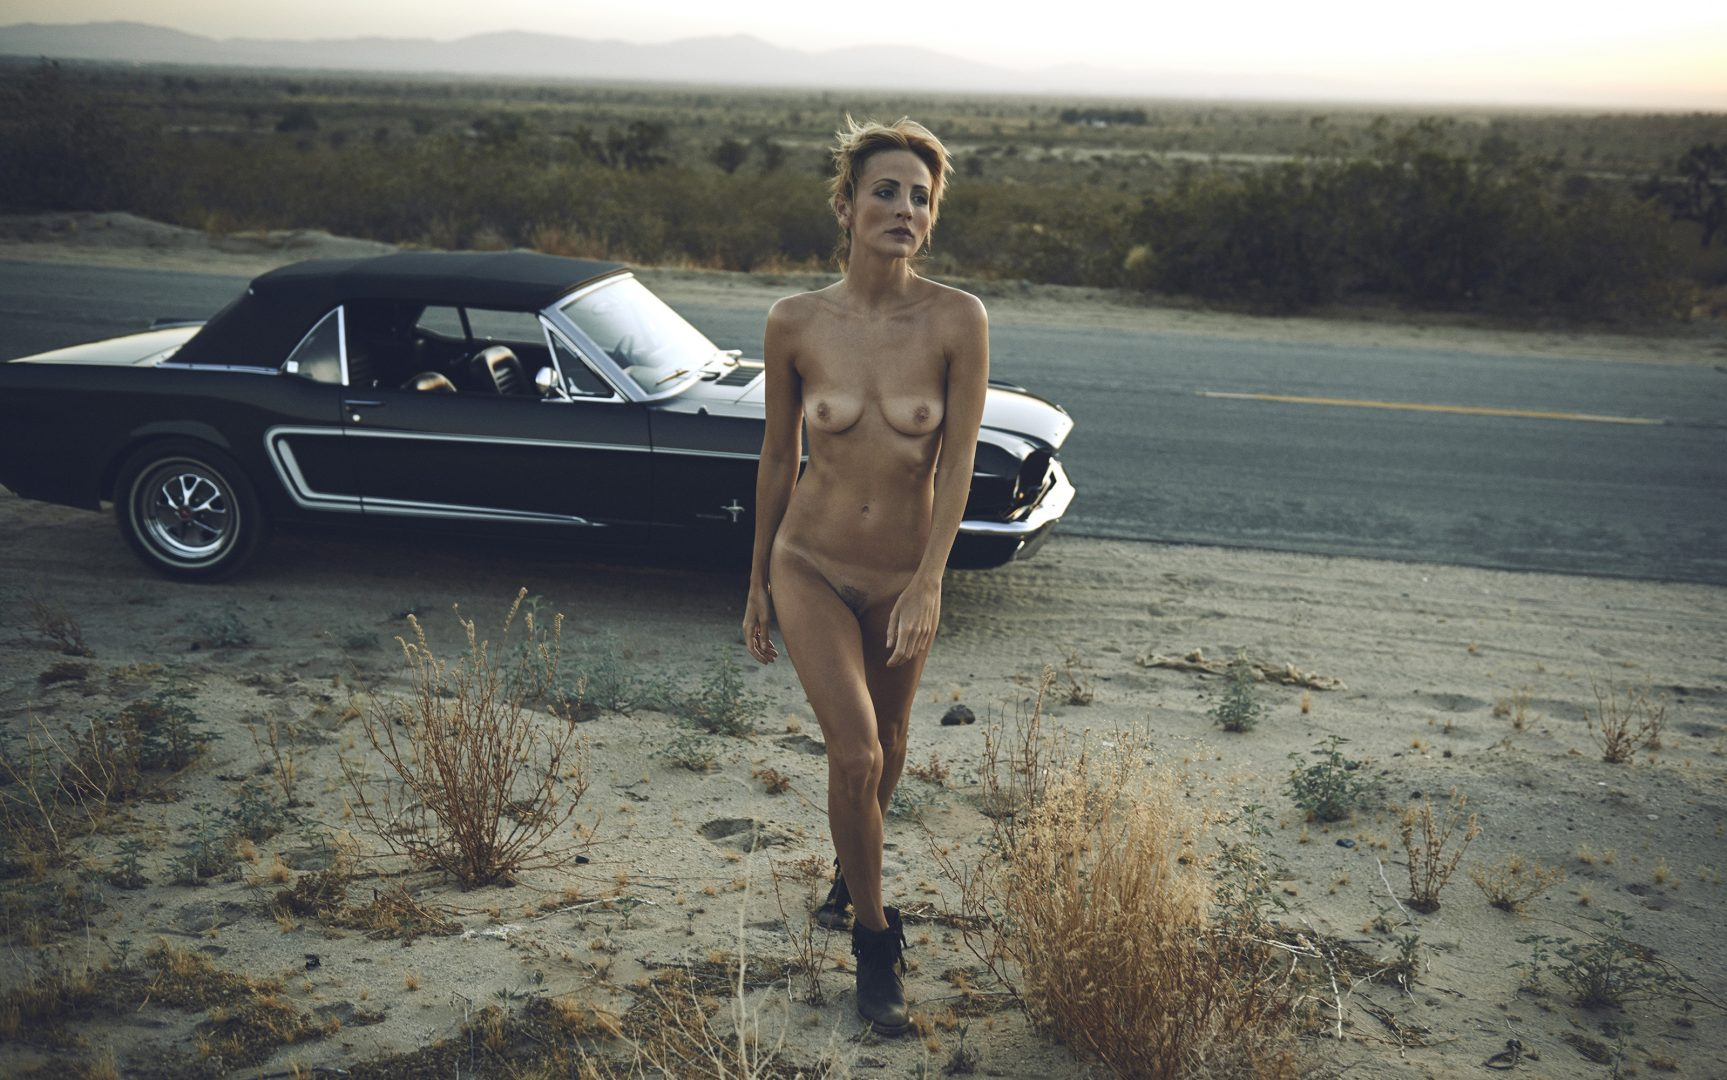 Naked girl walking away from a Ford Mustang in the desert after sunset by Stefan Rappo